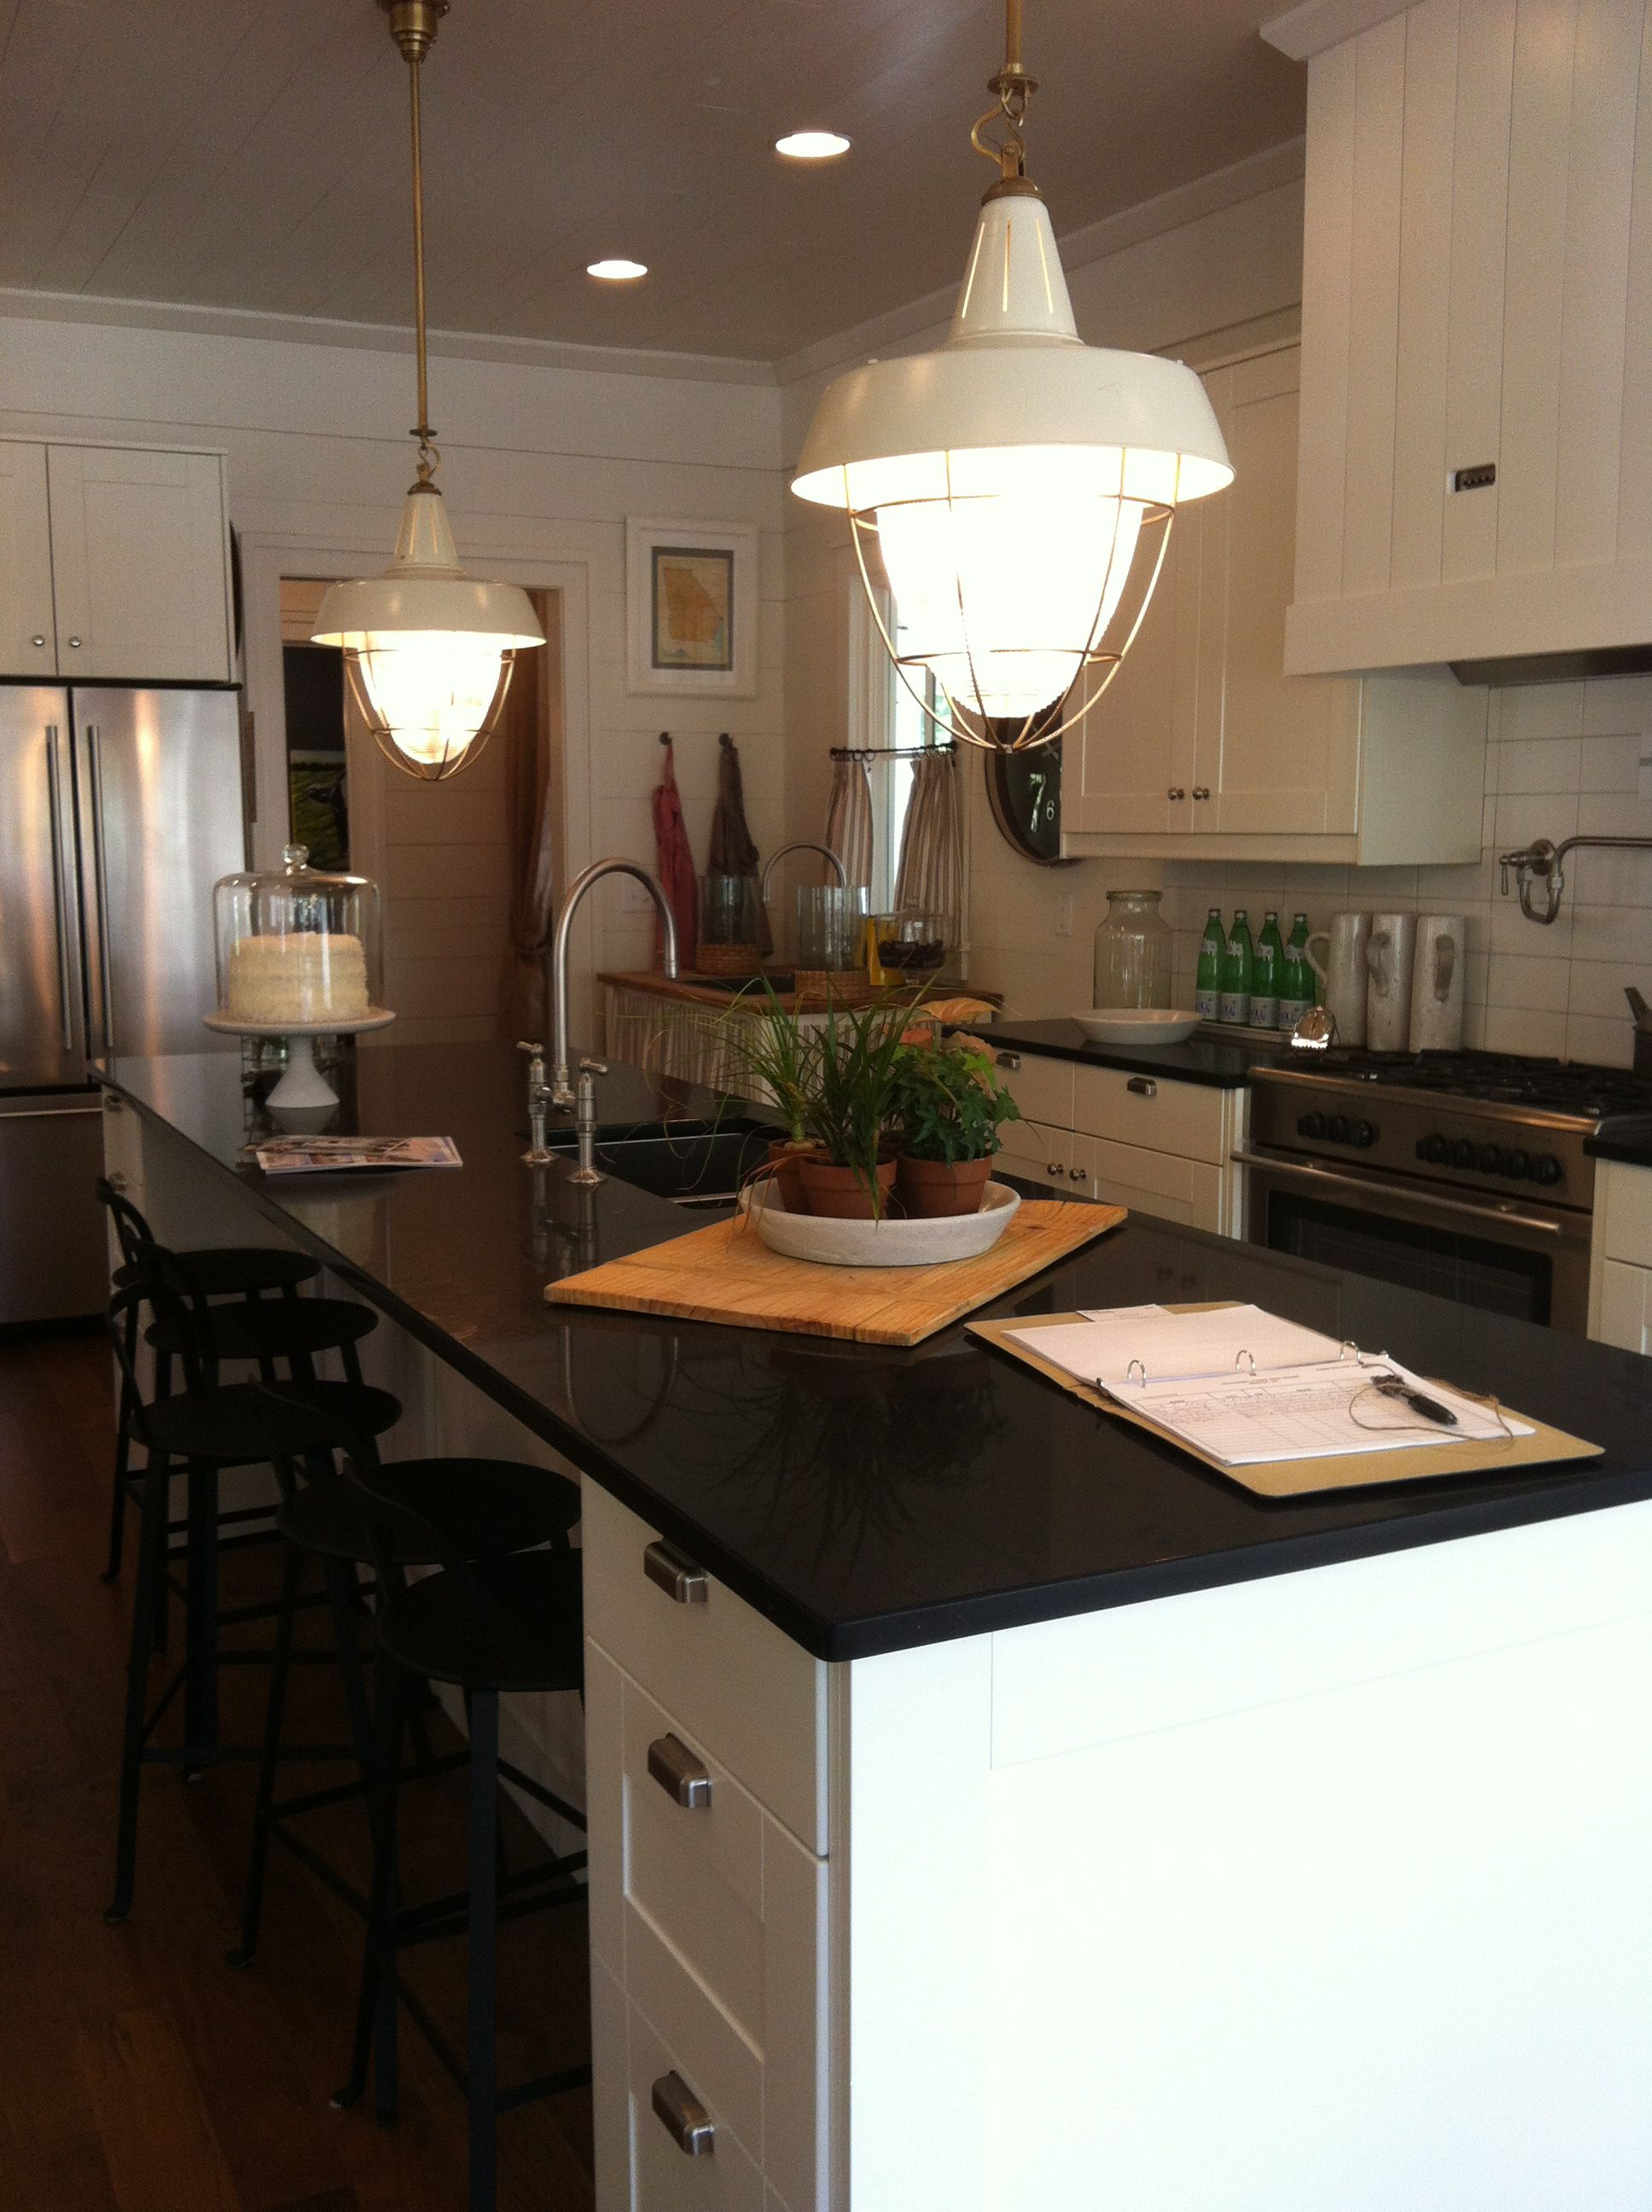 Kitchen island all are from IKEA. Countertops